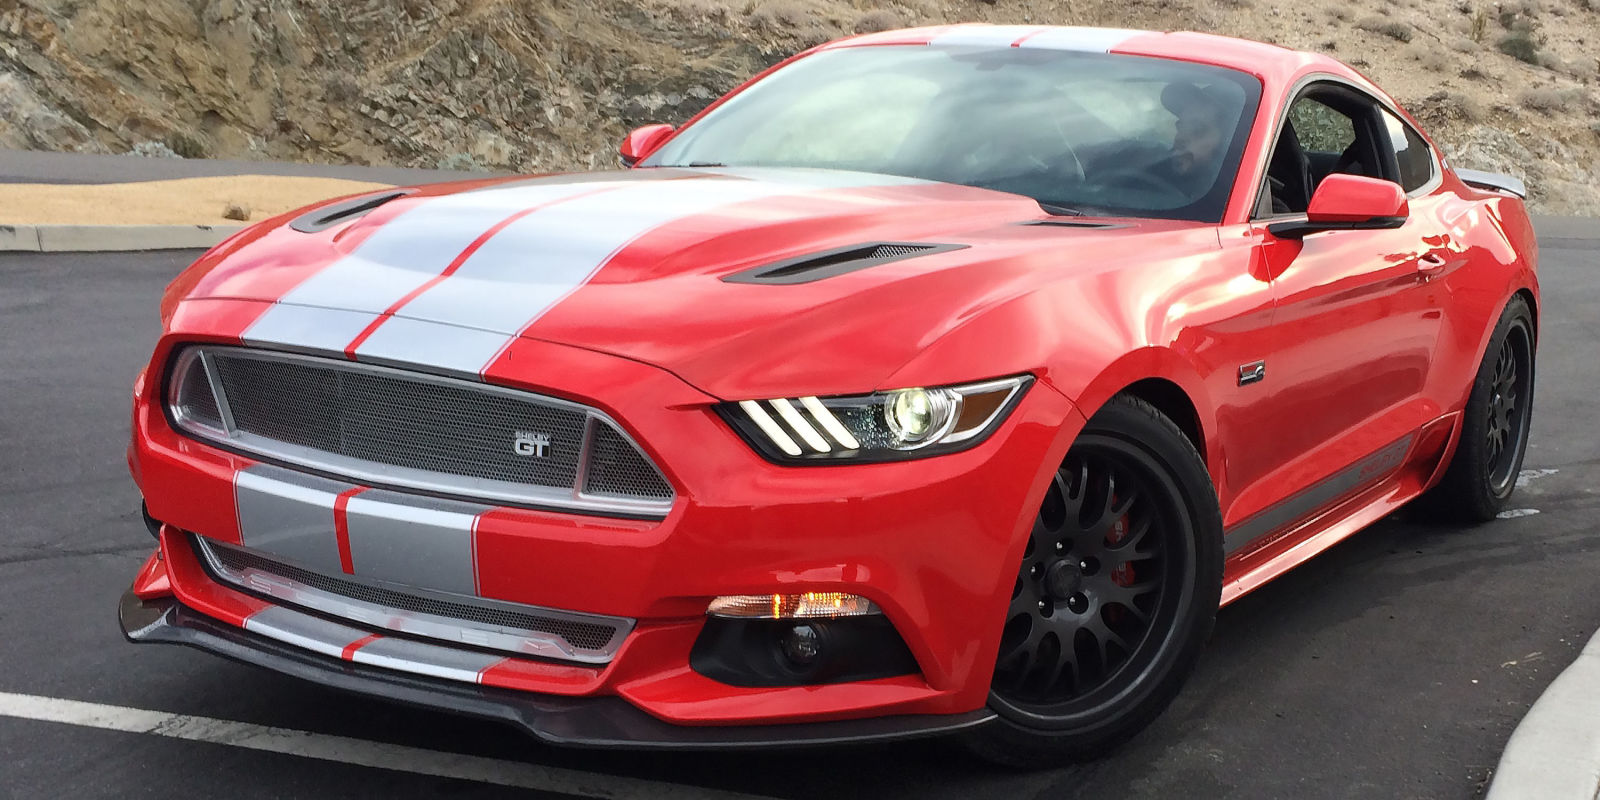 2015 Shelby Gt Is All Looks And No Supercharged Goodness